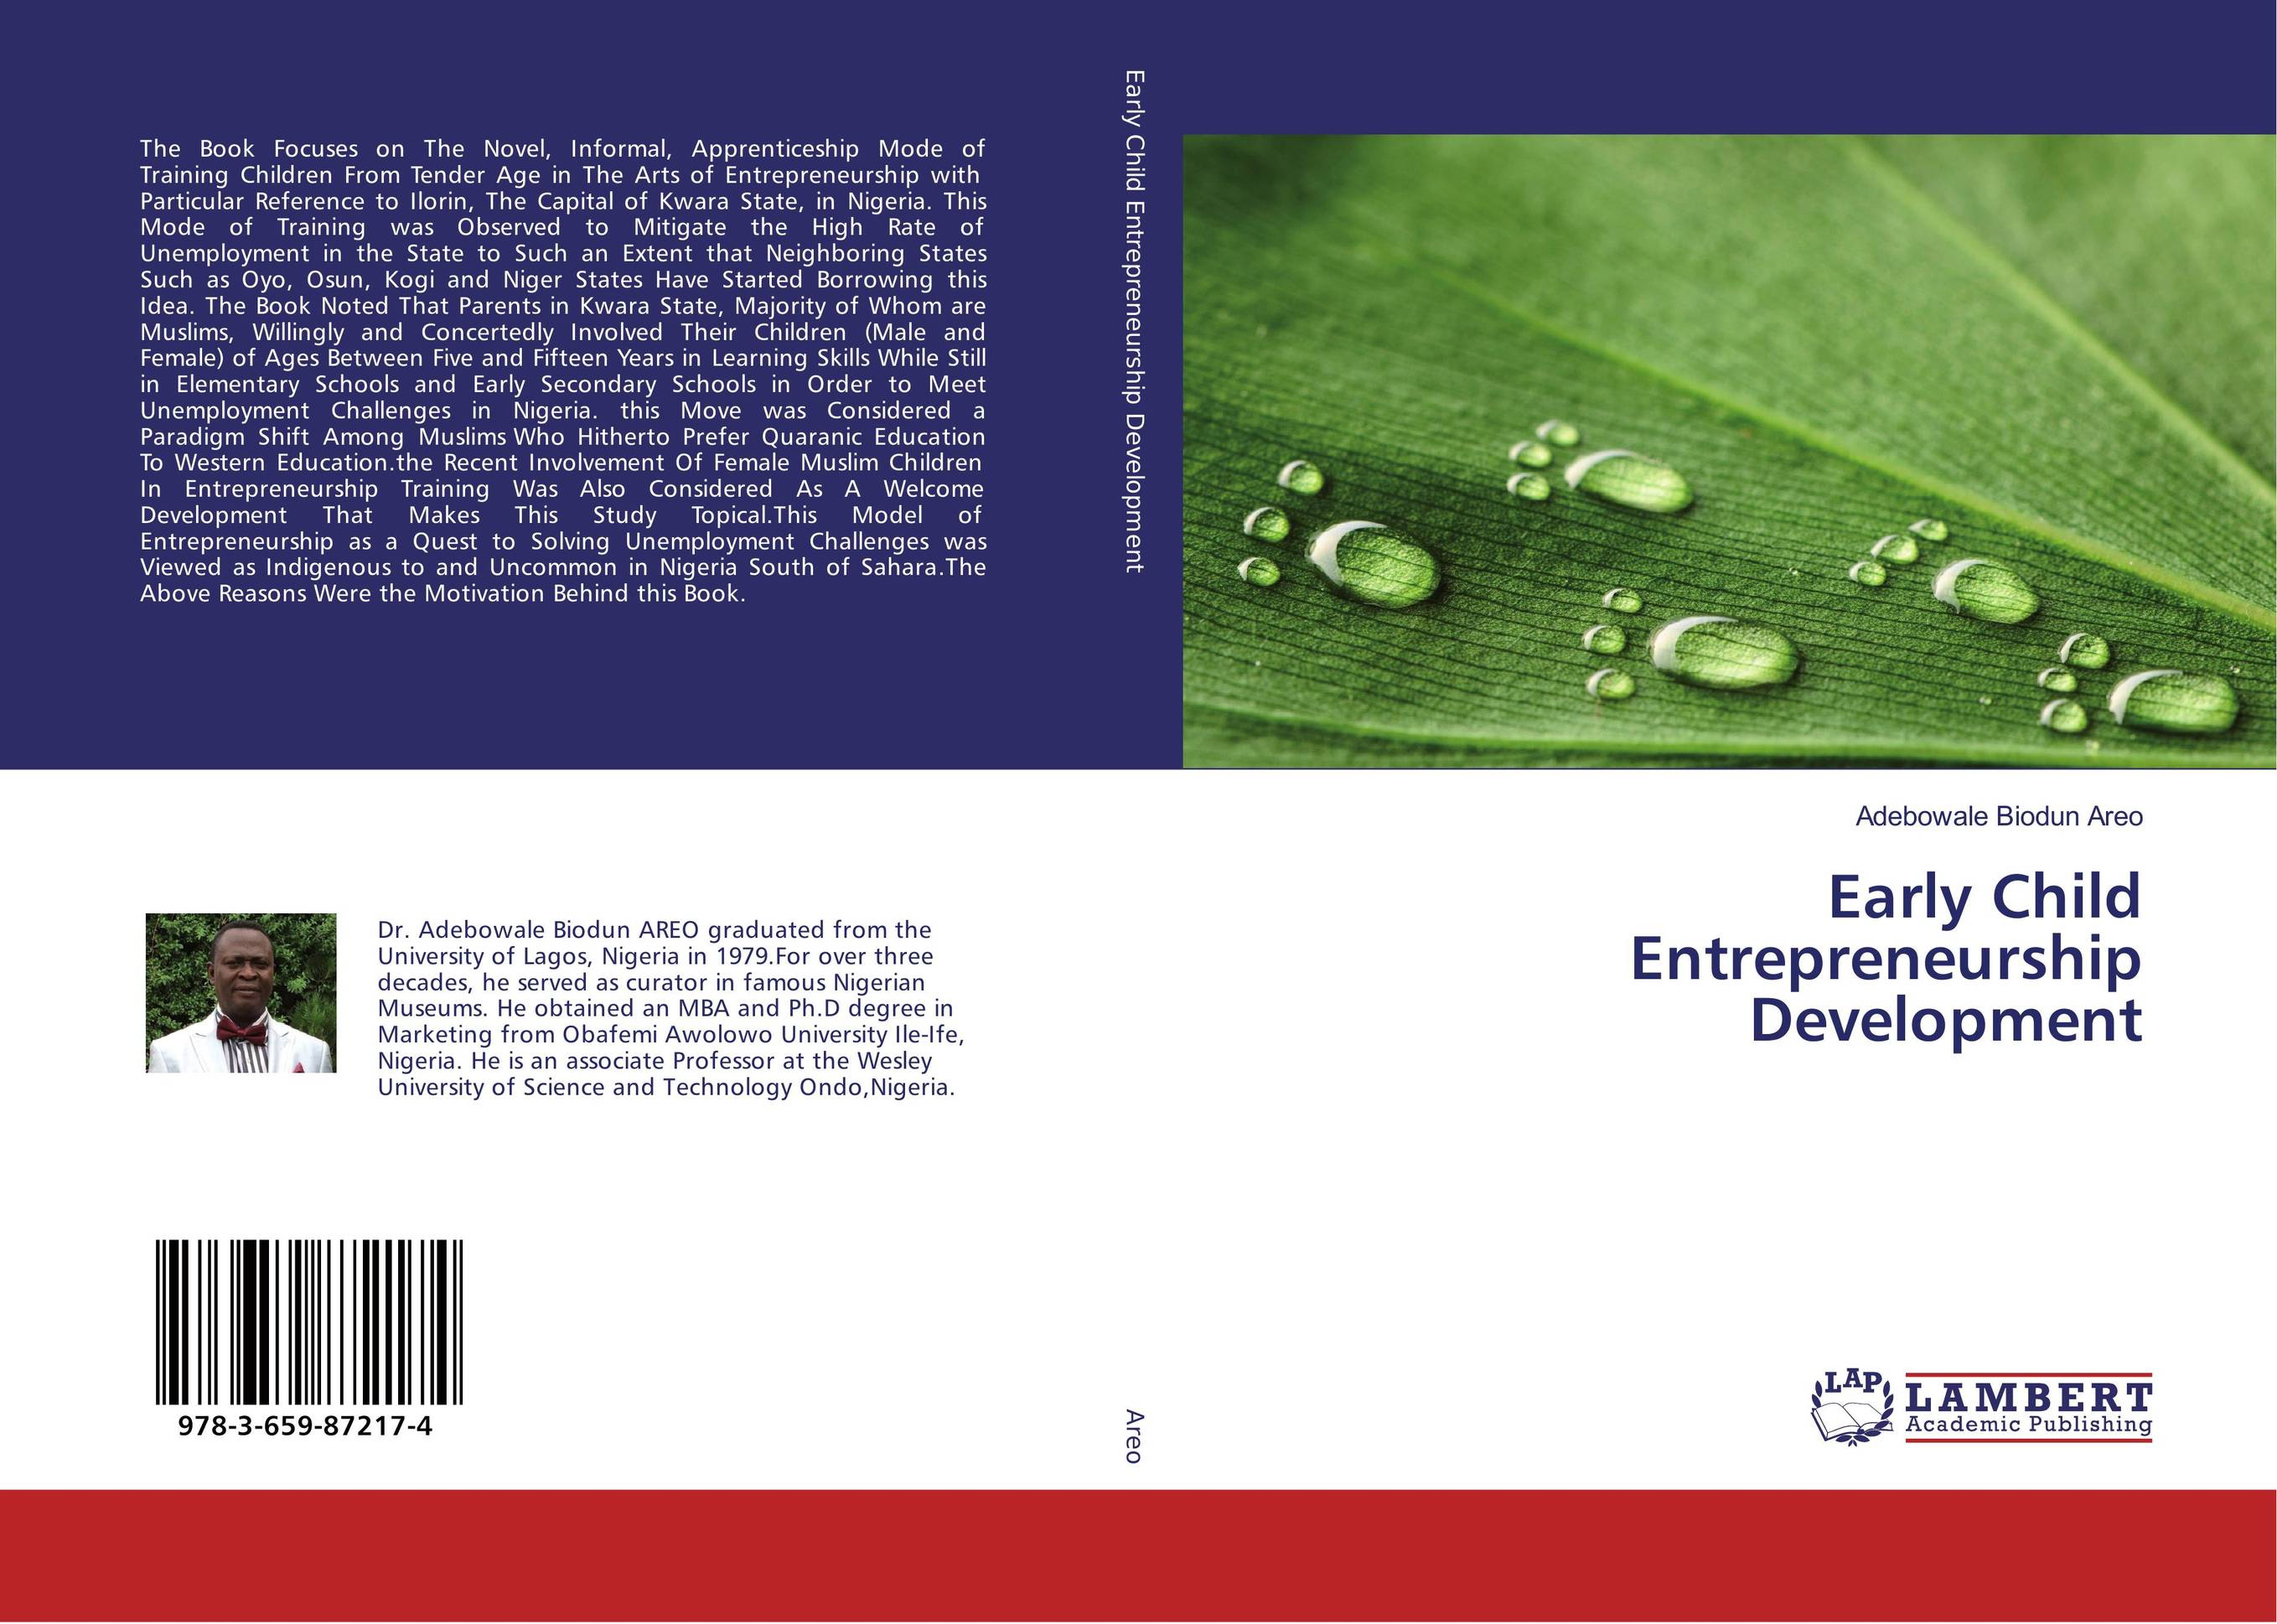 Early Child Entrepreneurship Development